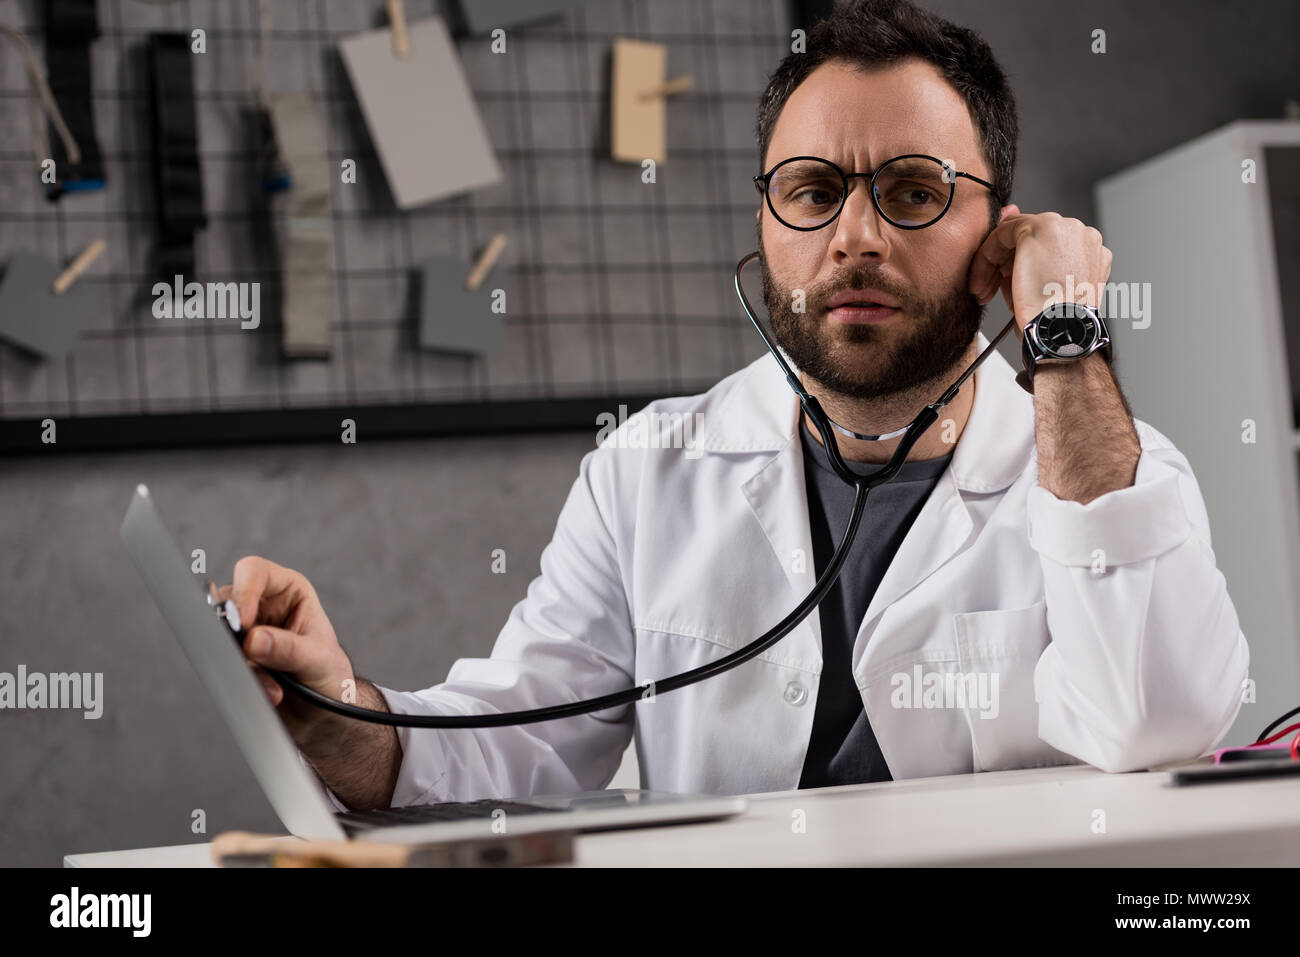 man in white coat and stethoscope diagnosing laptop - Stock Image